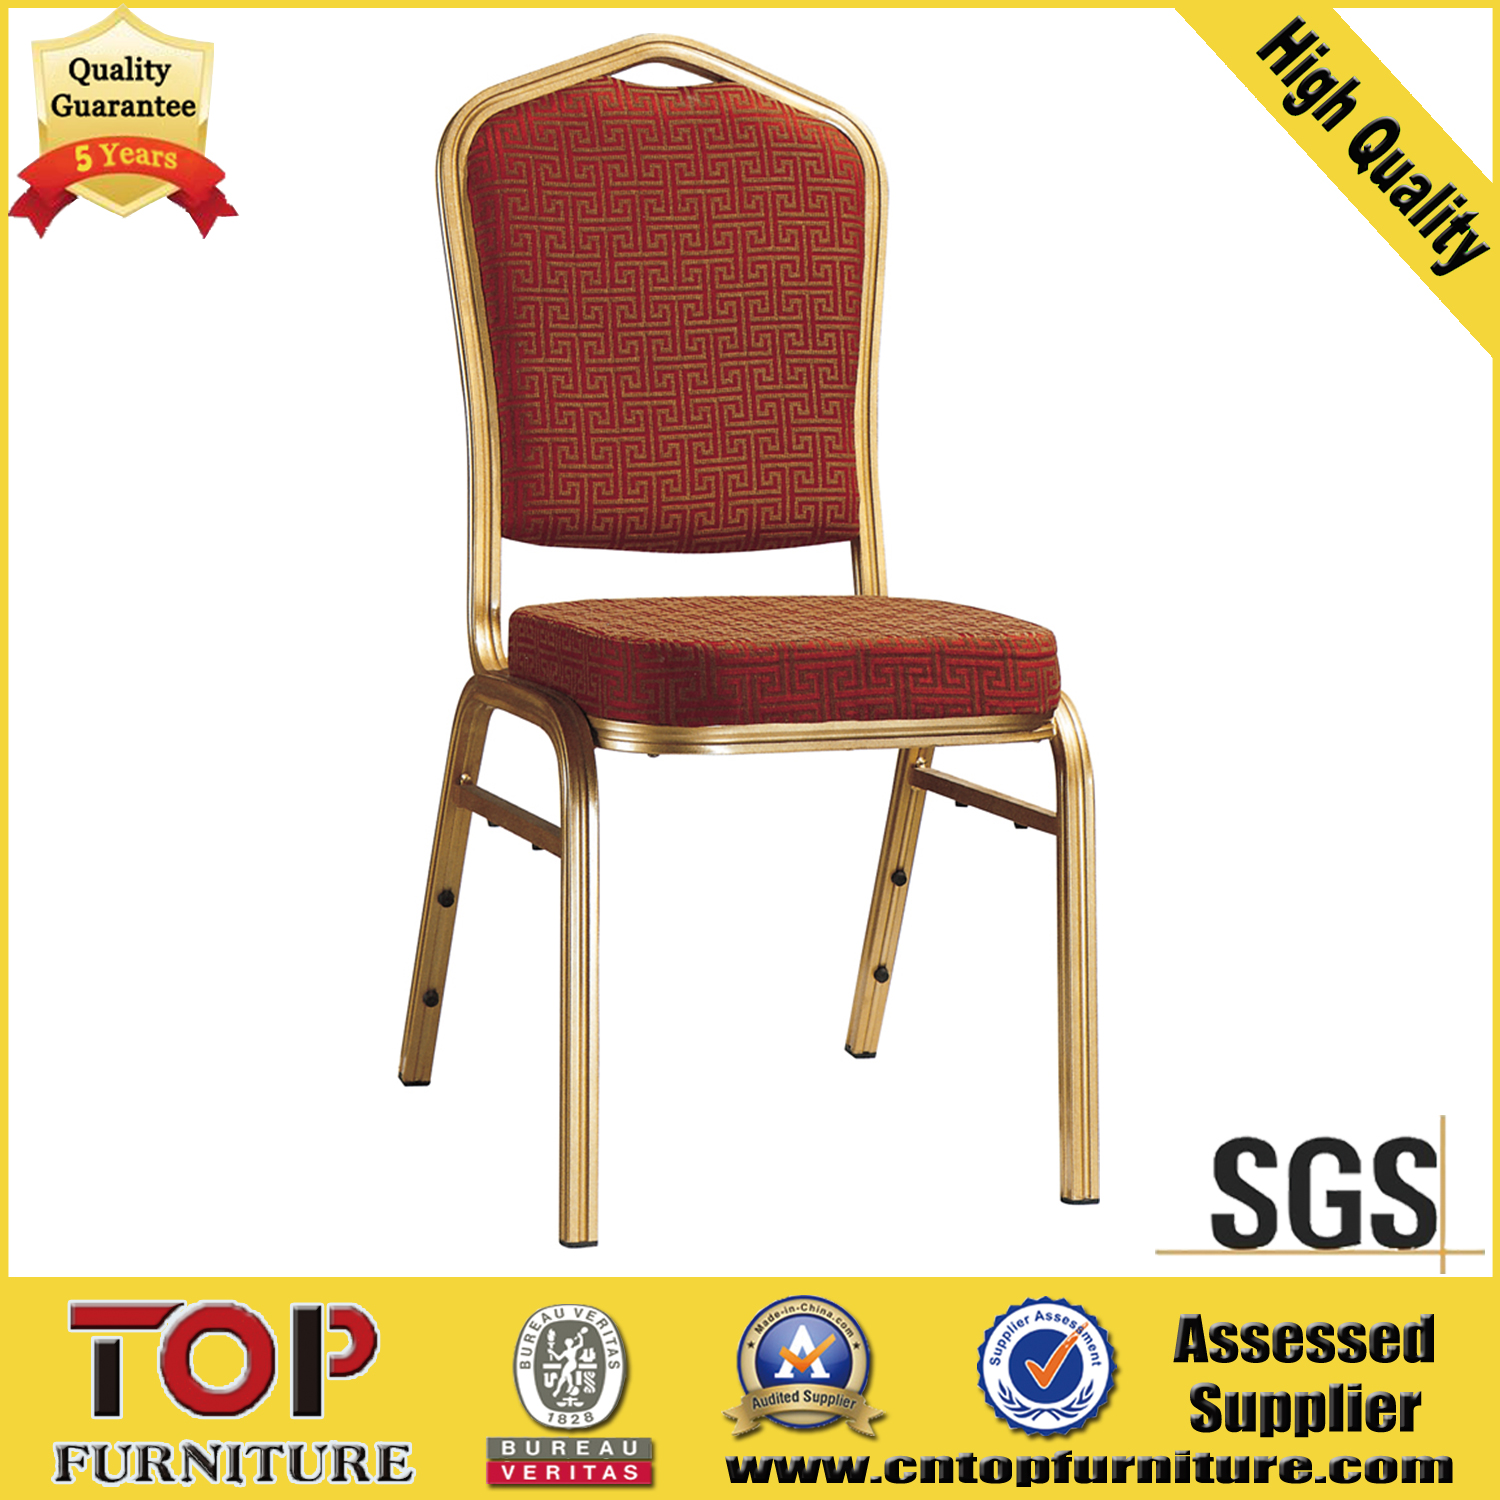 Banquet Chair from TOP FURNITURE